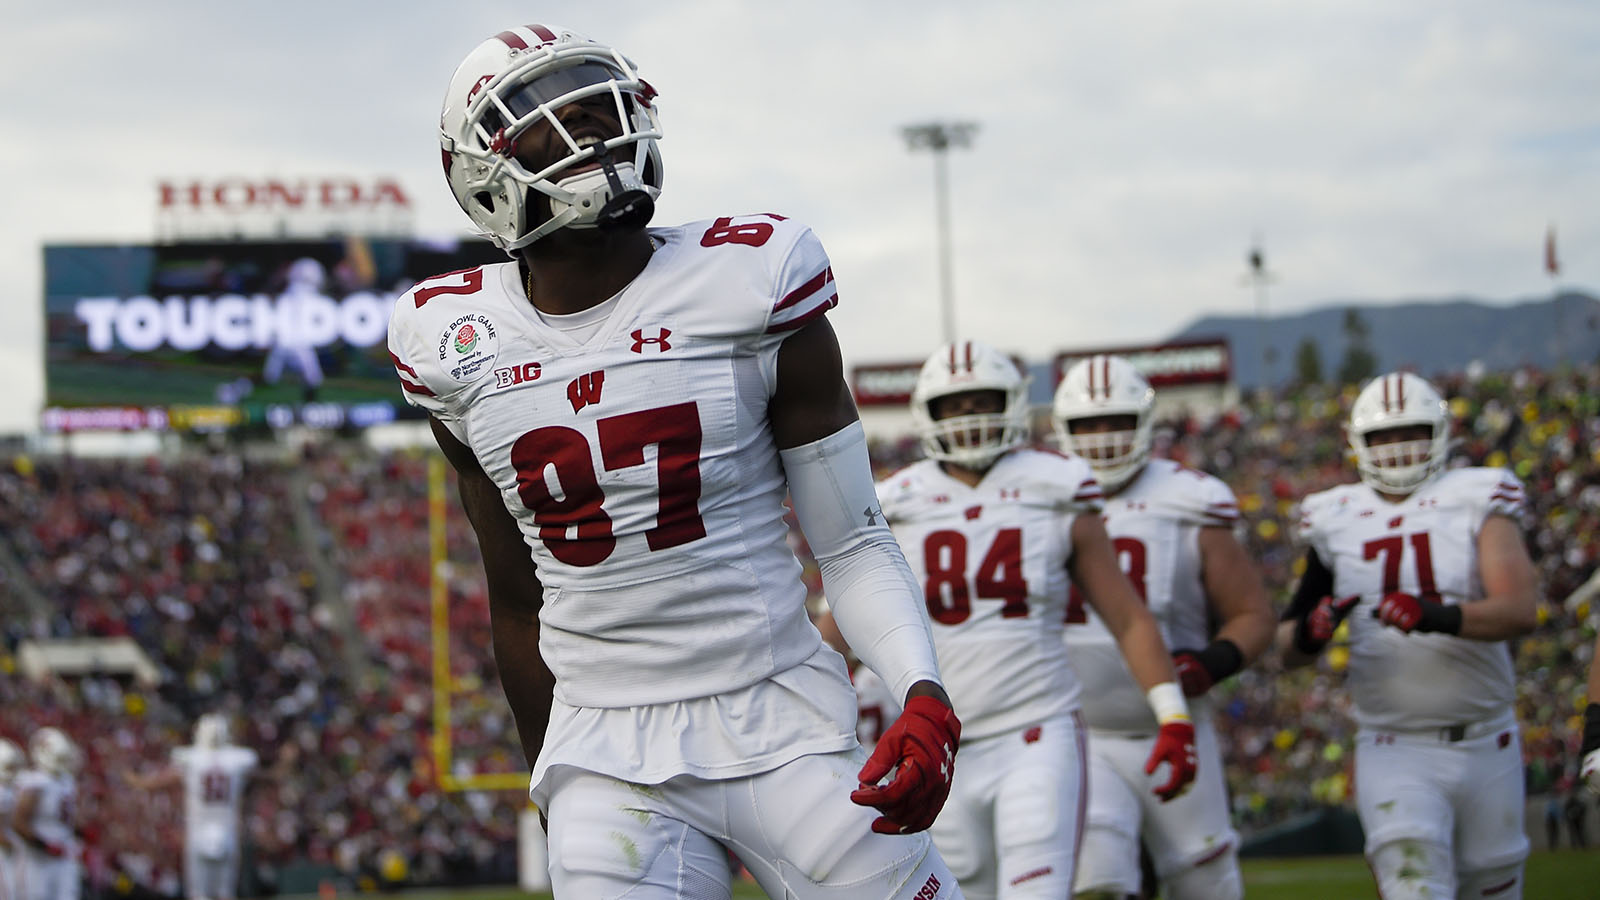 Wisconsin wide receiver Quintez Cephus celebrates after scoring against Oregon during first half of the Rose Bowl NCAA college football game Wednesday, Jan. 1, 2020, in Pasadena, Calif. (AP Photo/Mark J. Terrill)